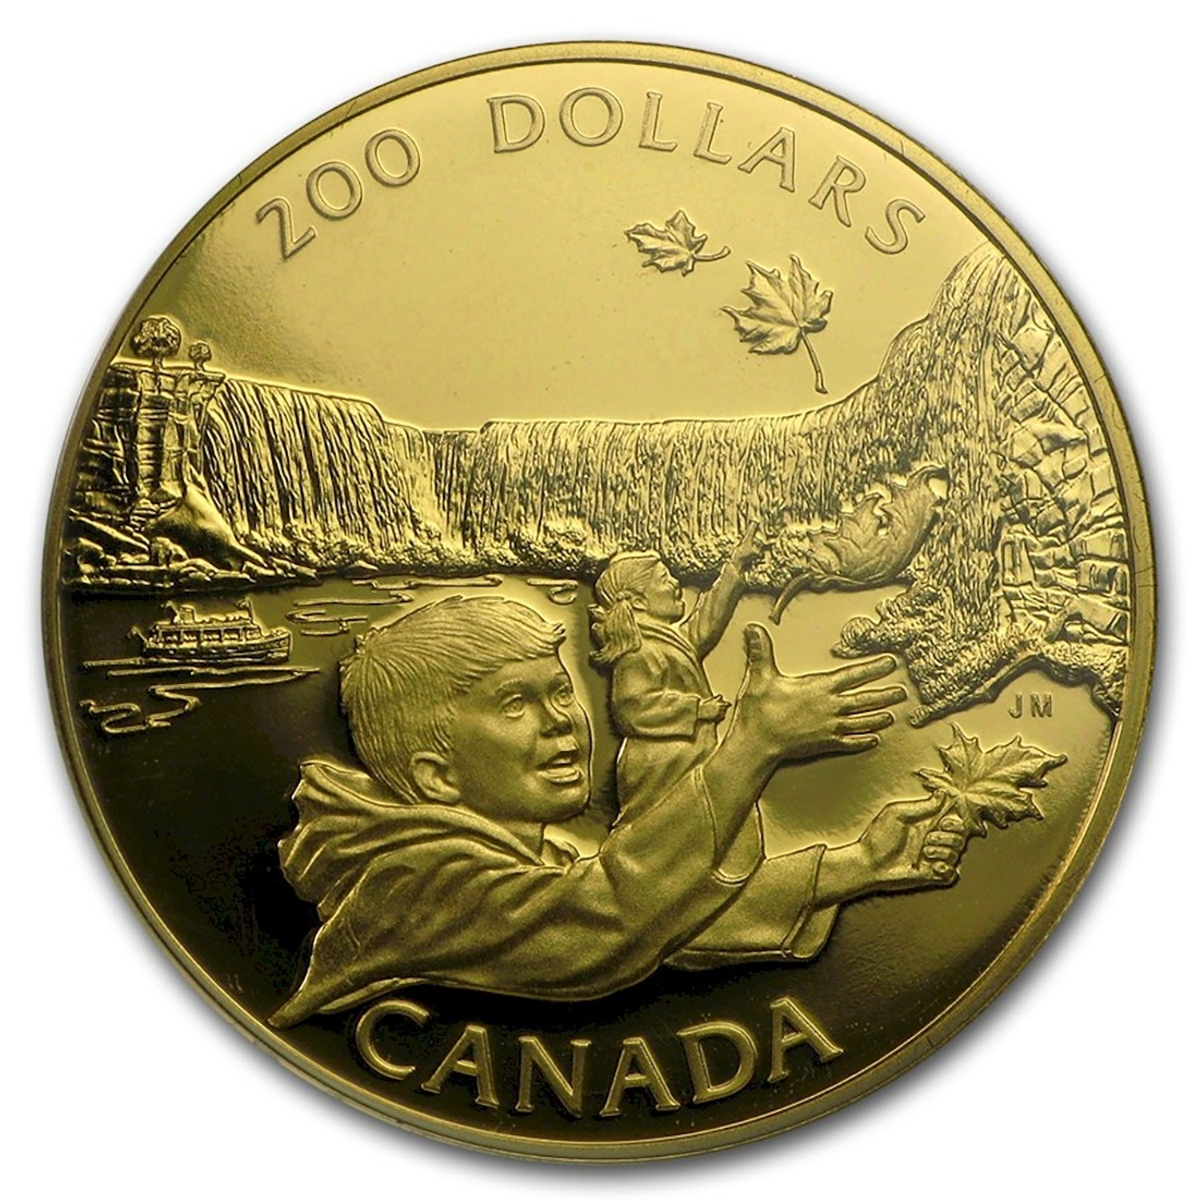 as issued from RCM BU roll of 1992 Canadian Pennies